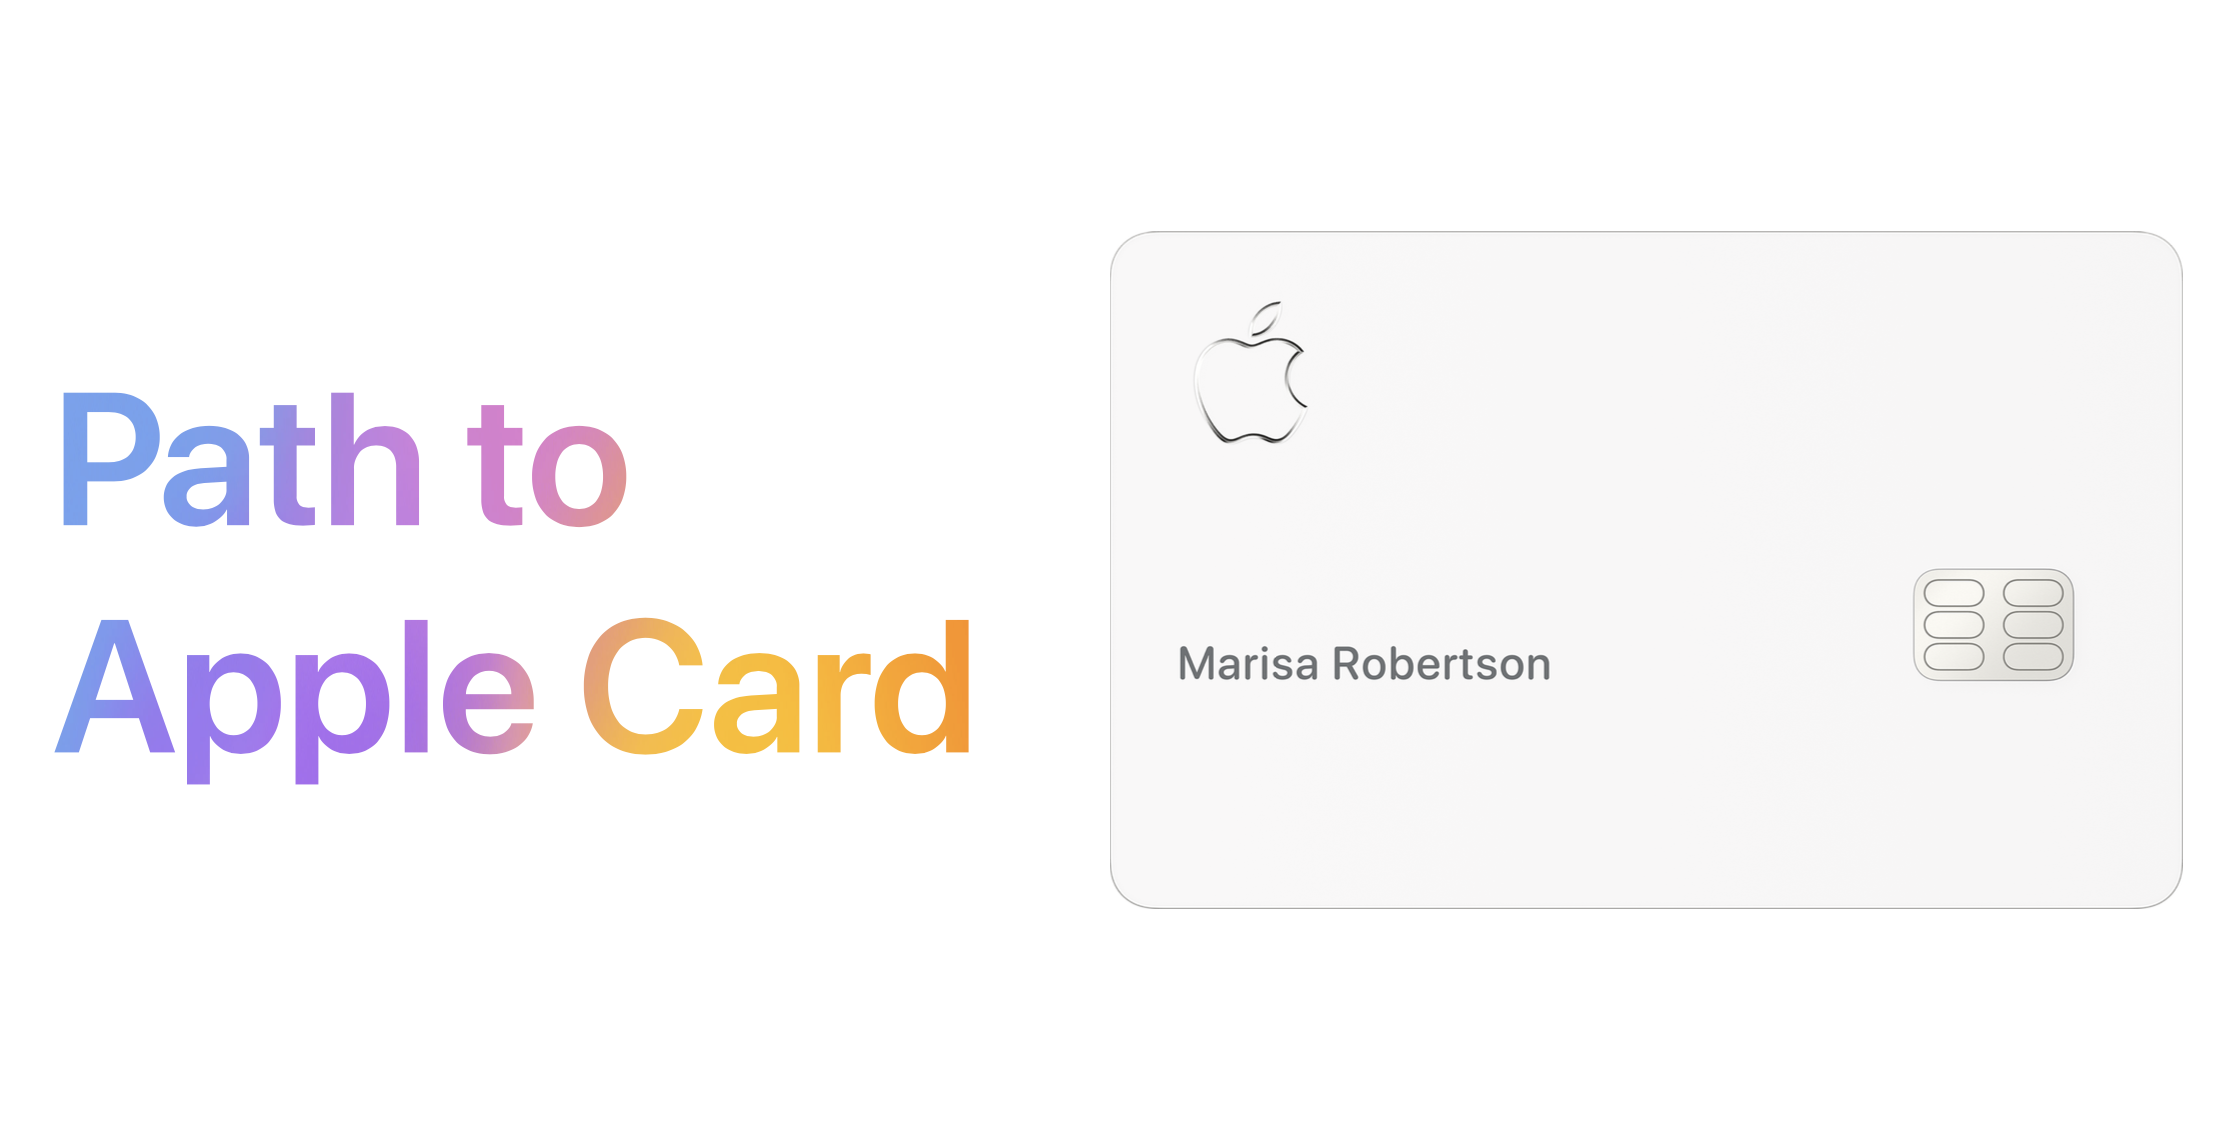 Apple launches Path to Apple Card, a 8-month credit worthiness